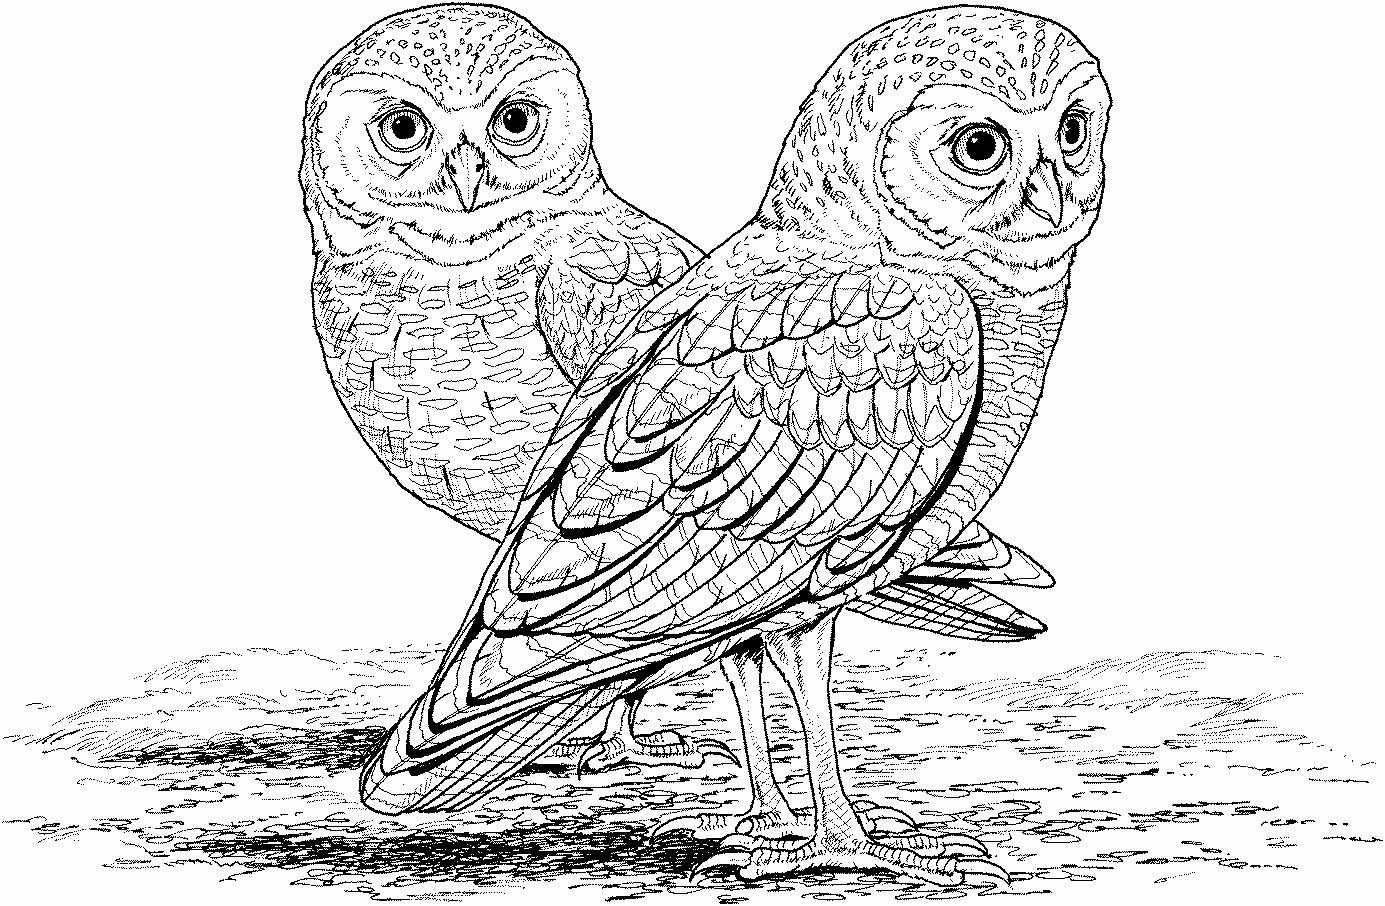 Coloring Pages Animals Hard Coloring Pages Gallery Owl Coloring Pages Animal Coloring Pages Mandala Coloring Pages